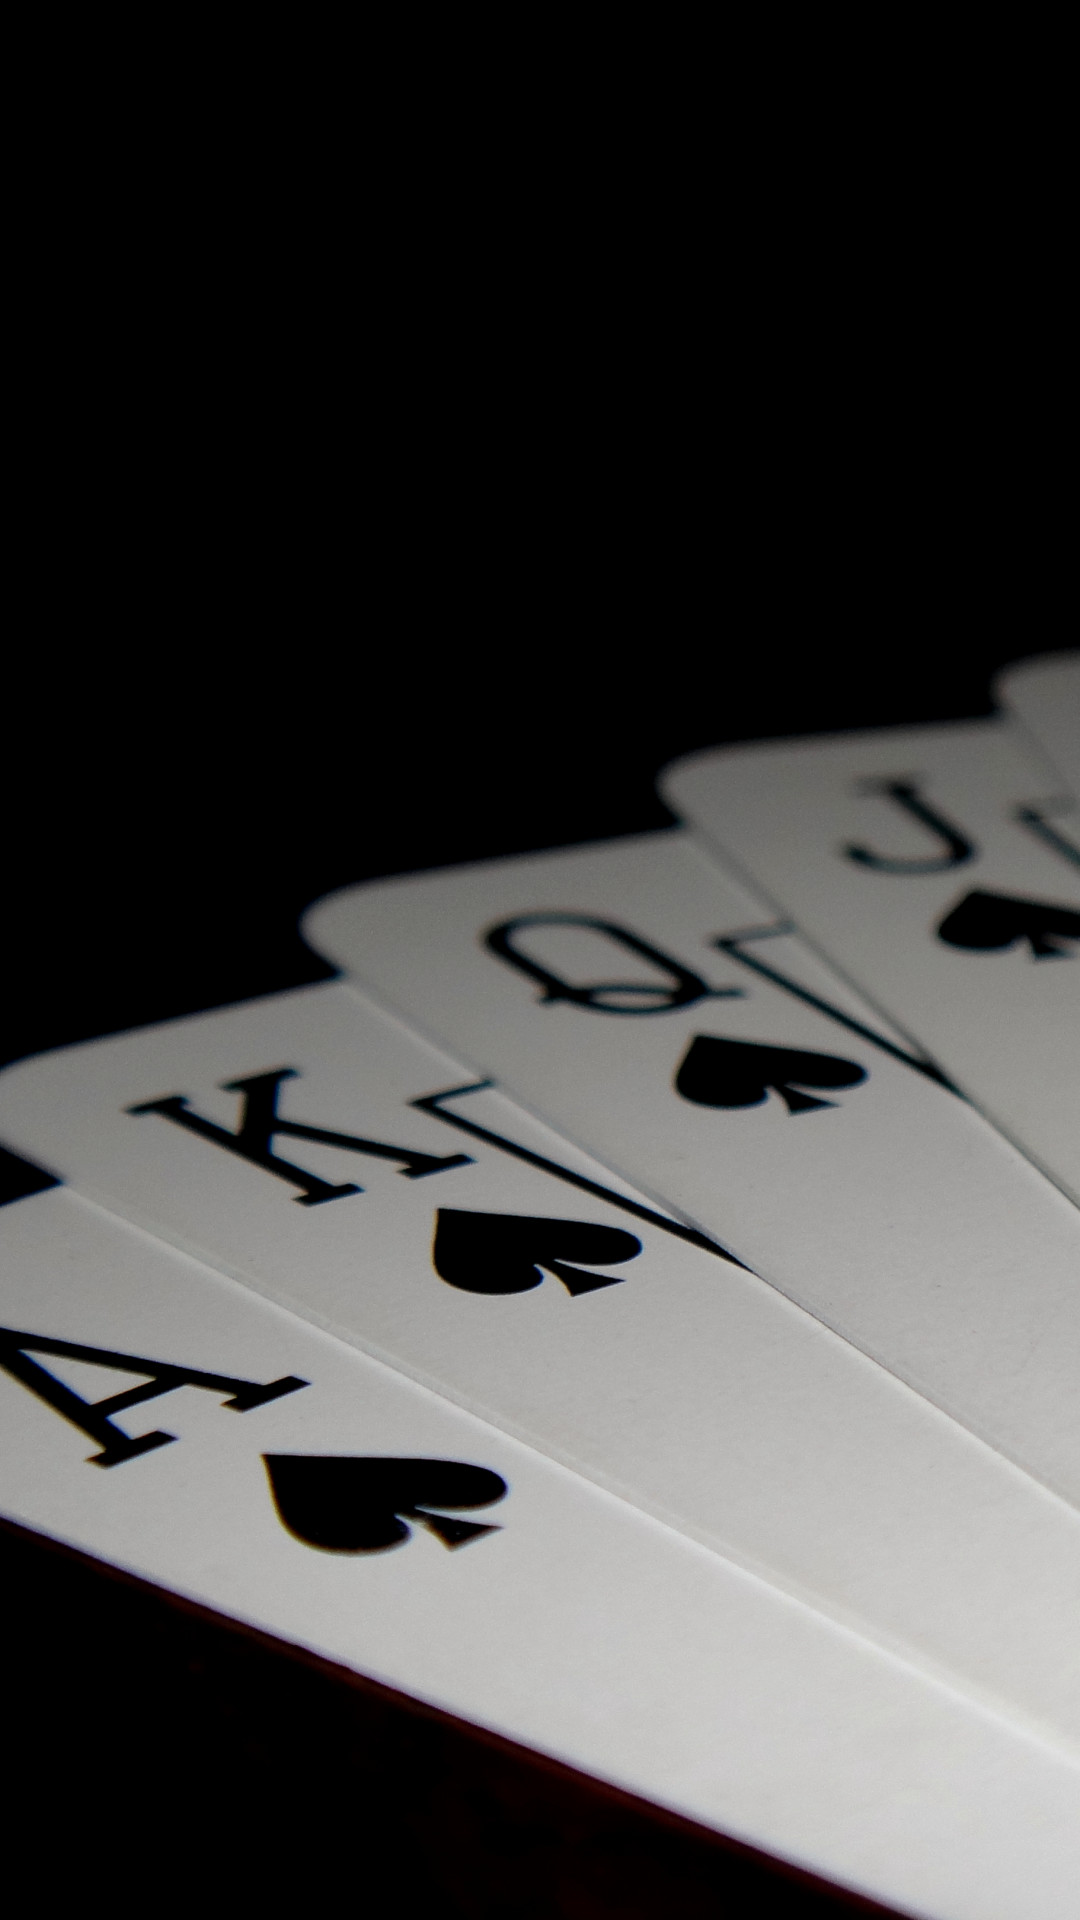 Wallpaper Poker